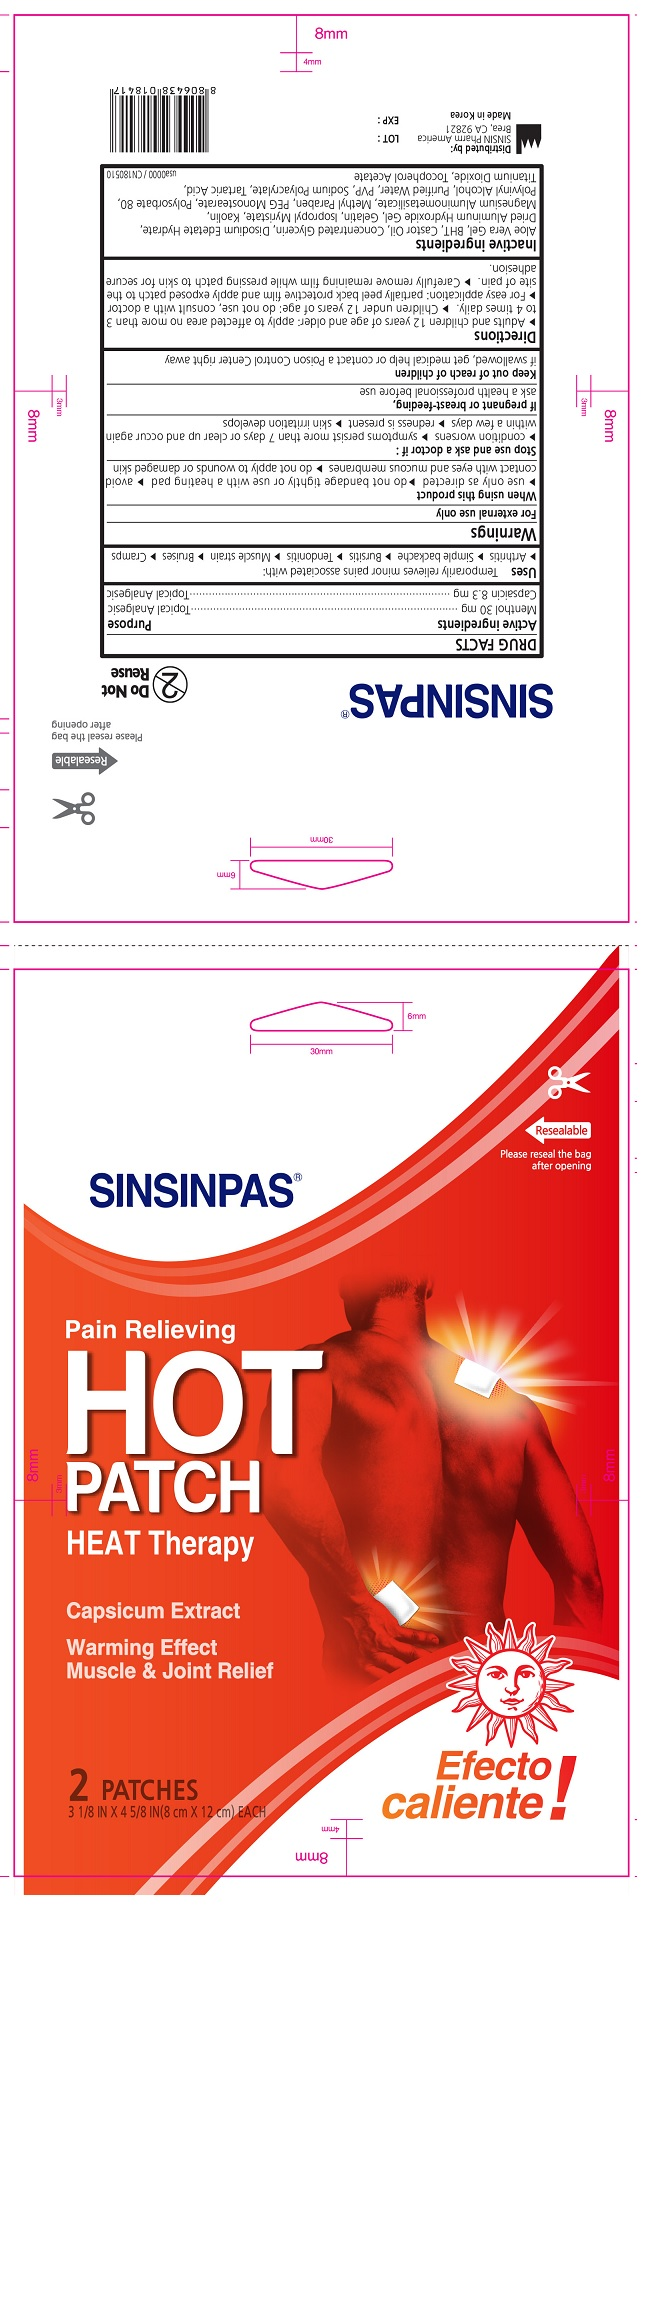 hot patch